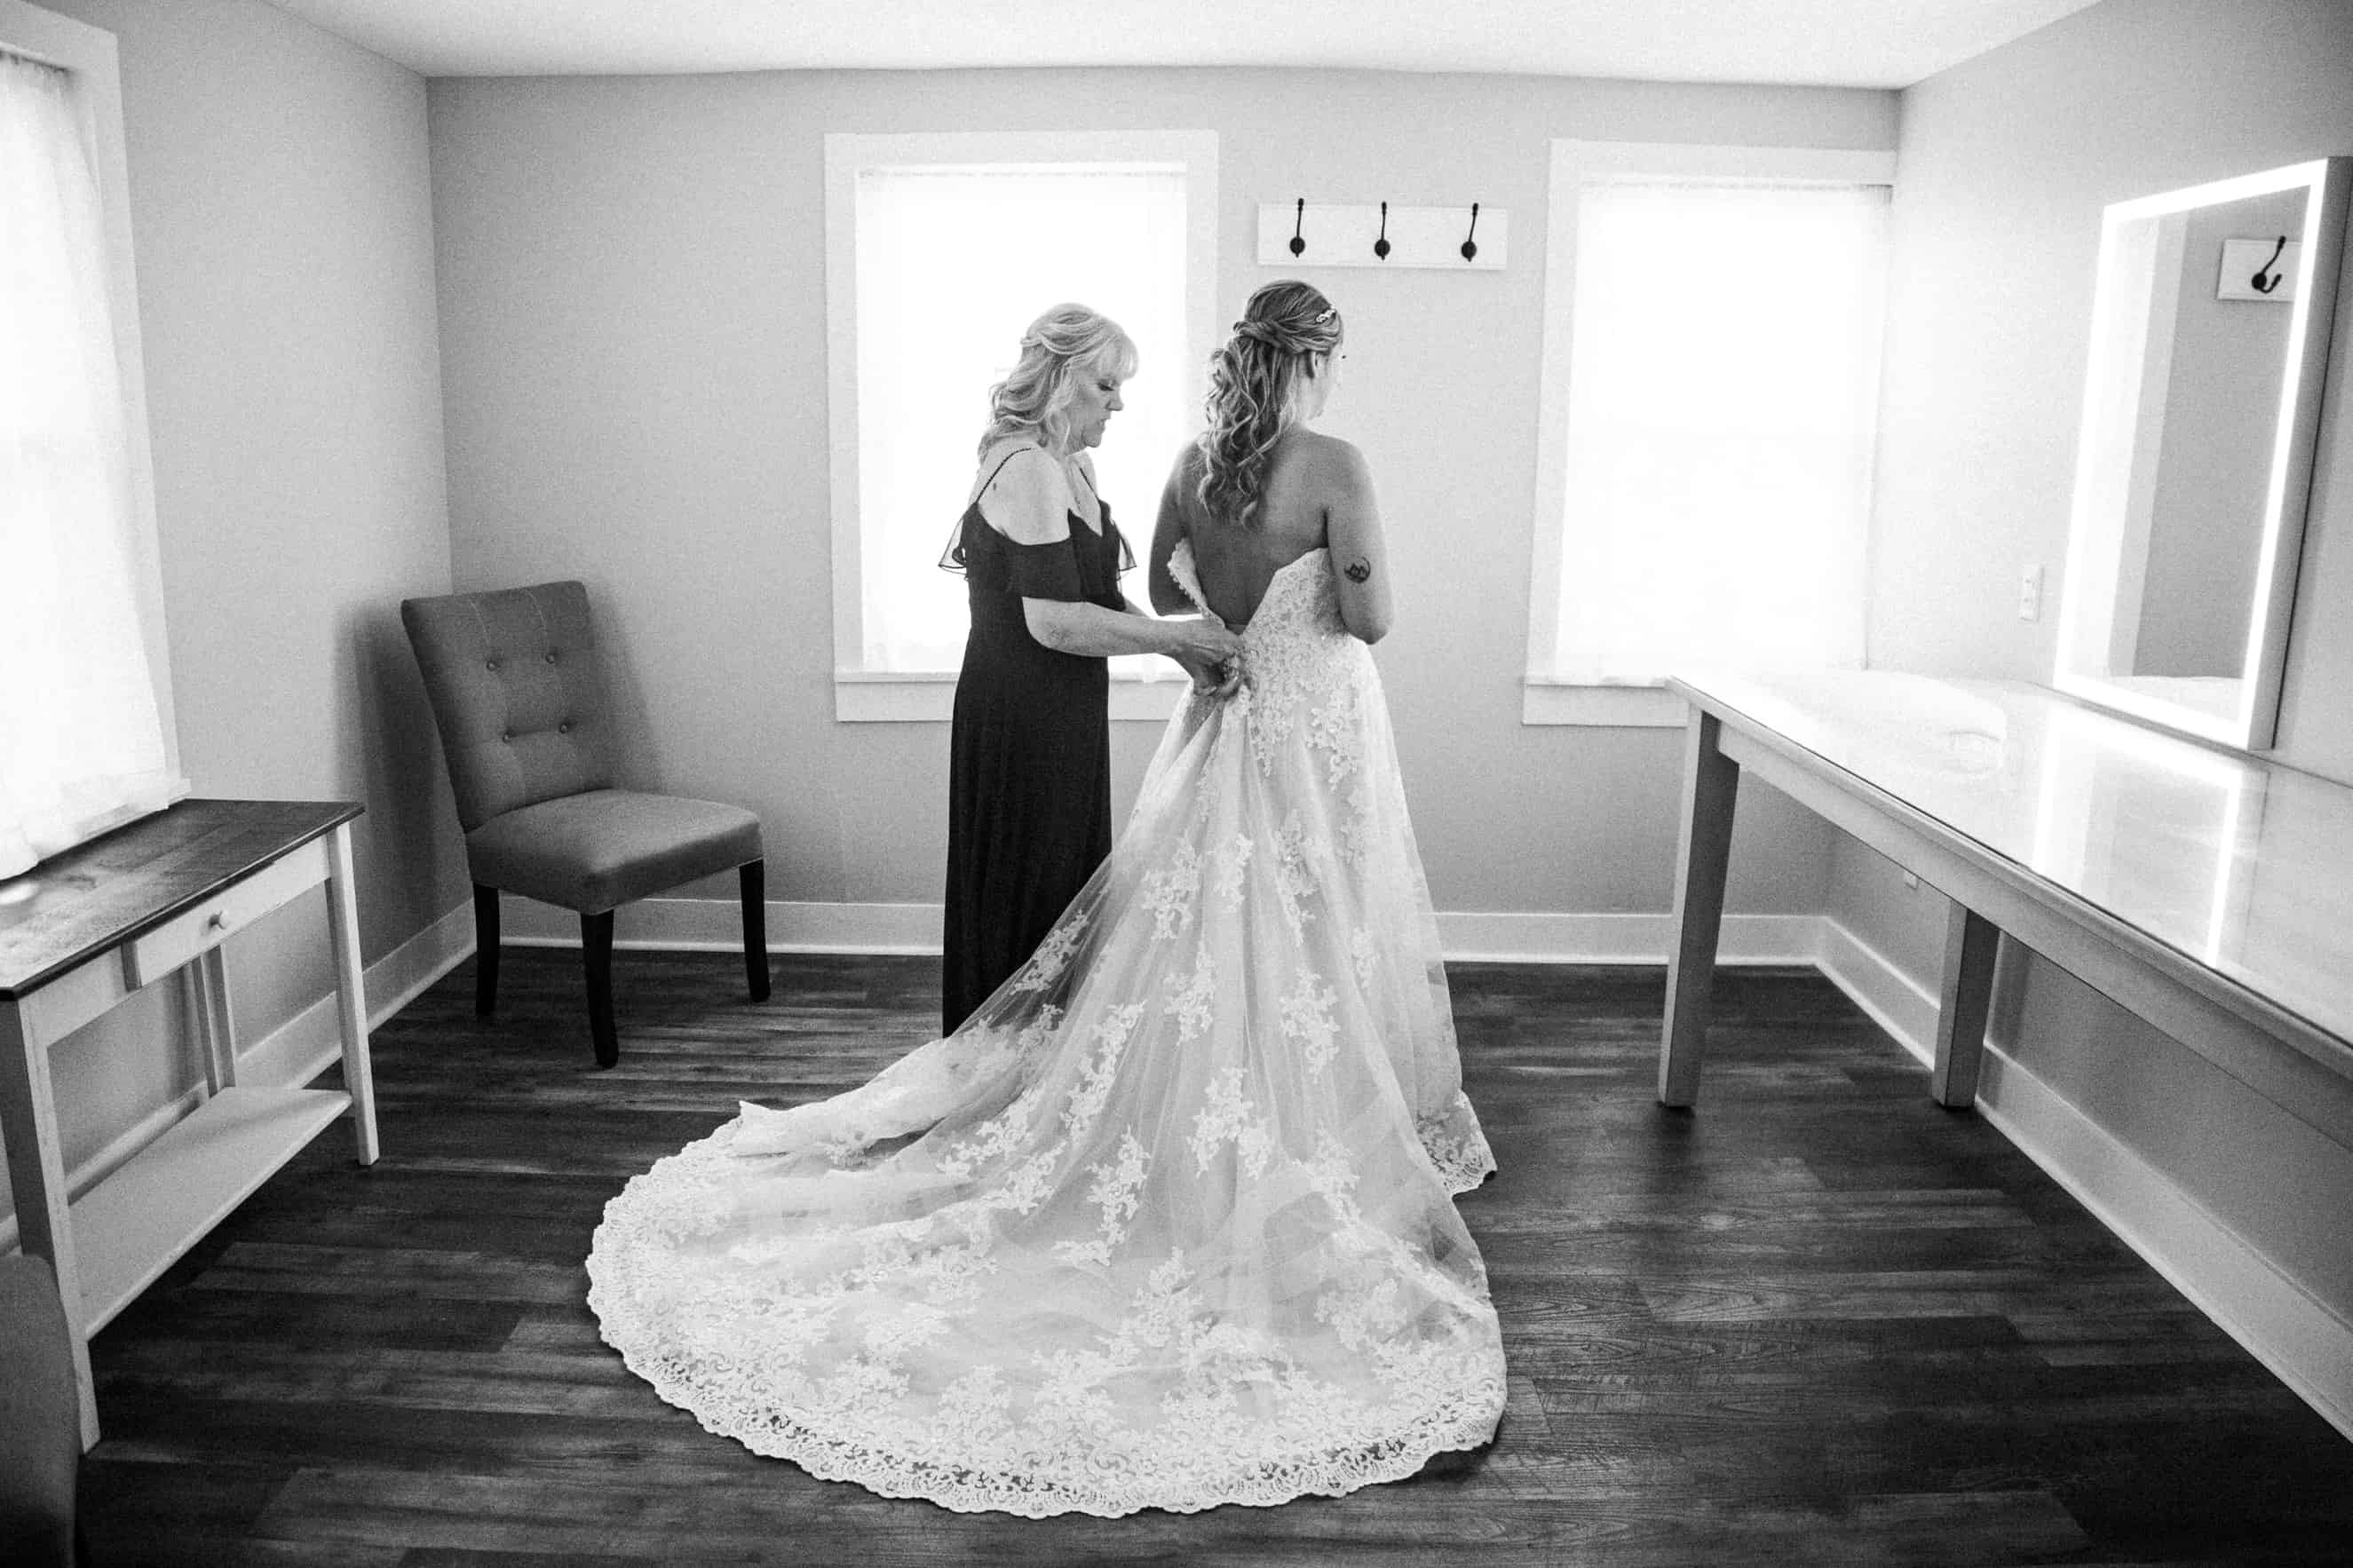 Wedding Photographers at Harvest View Barn at Hershey Farms